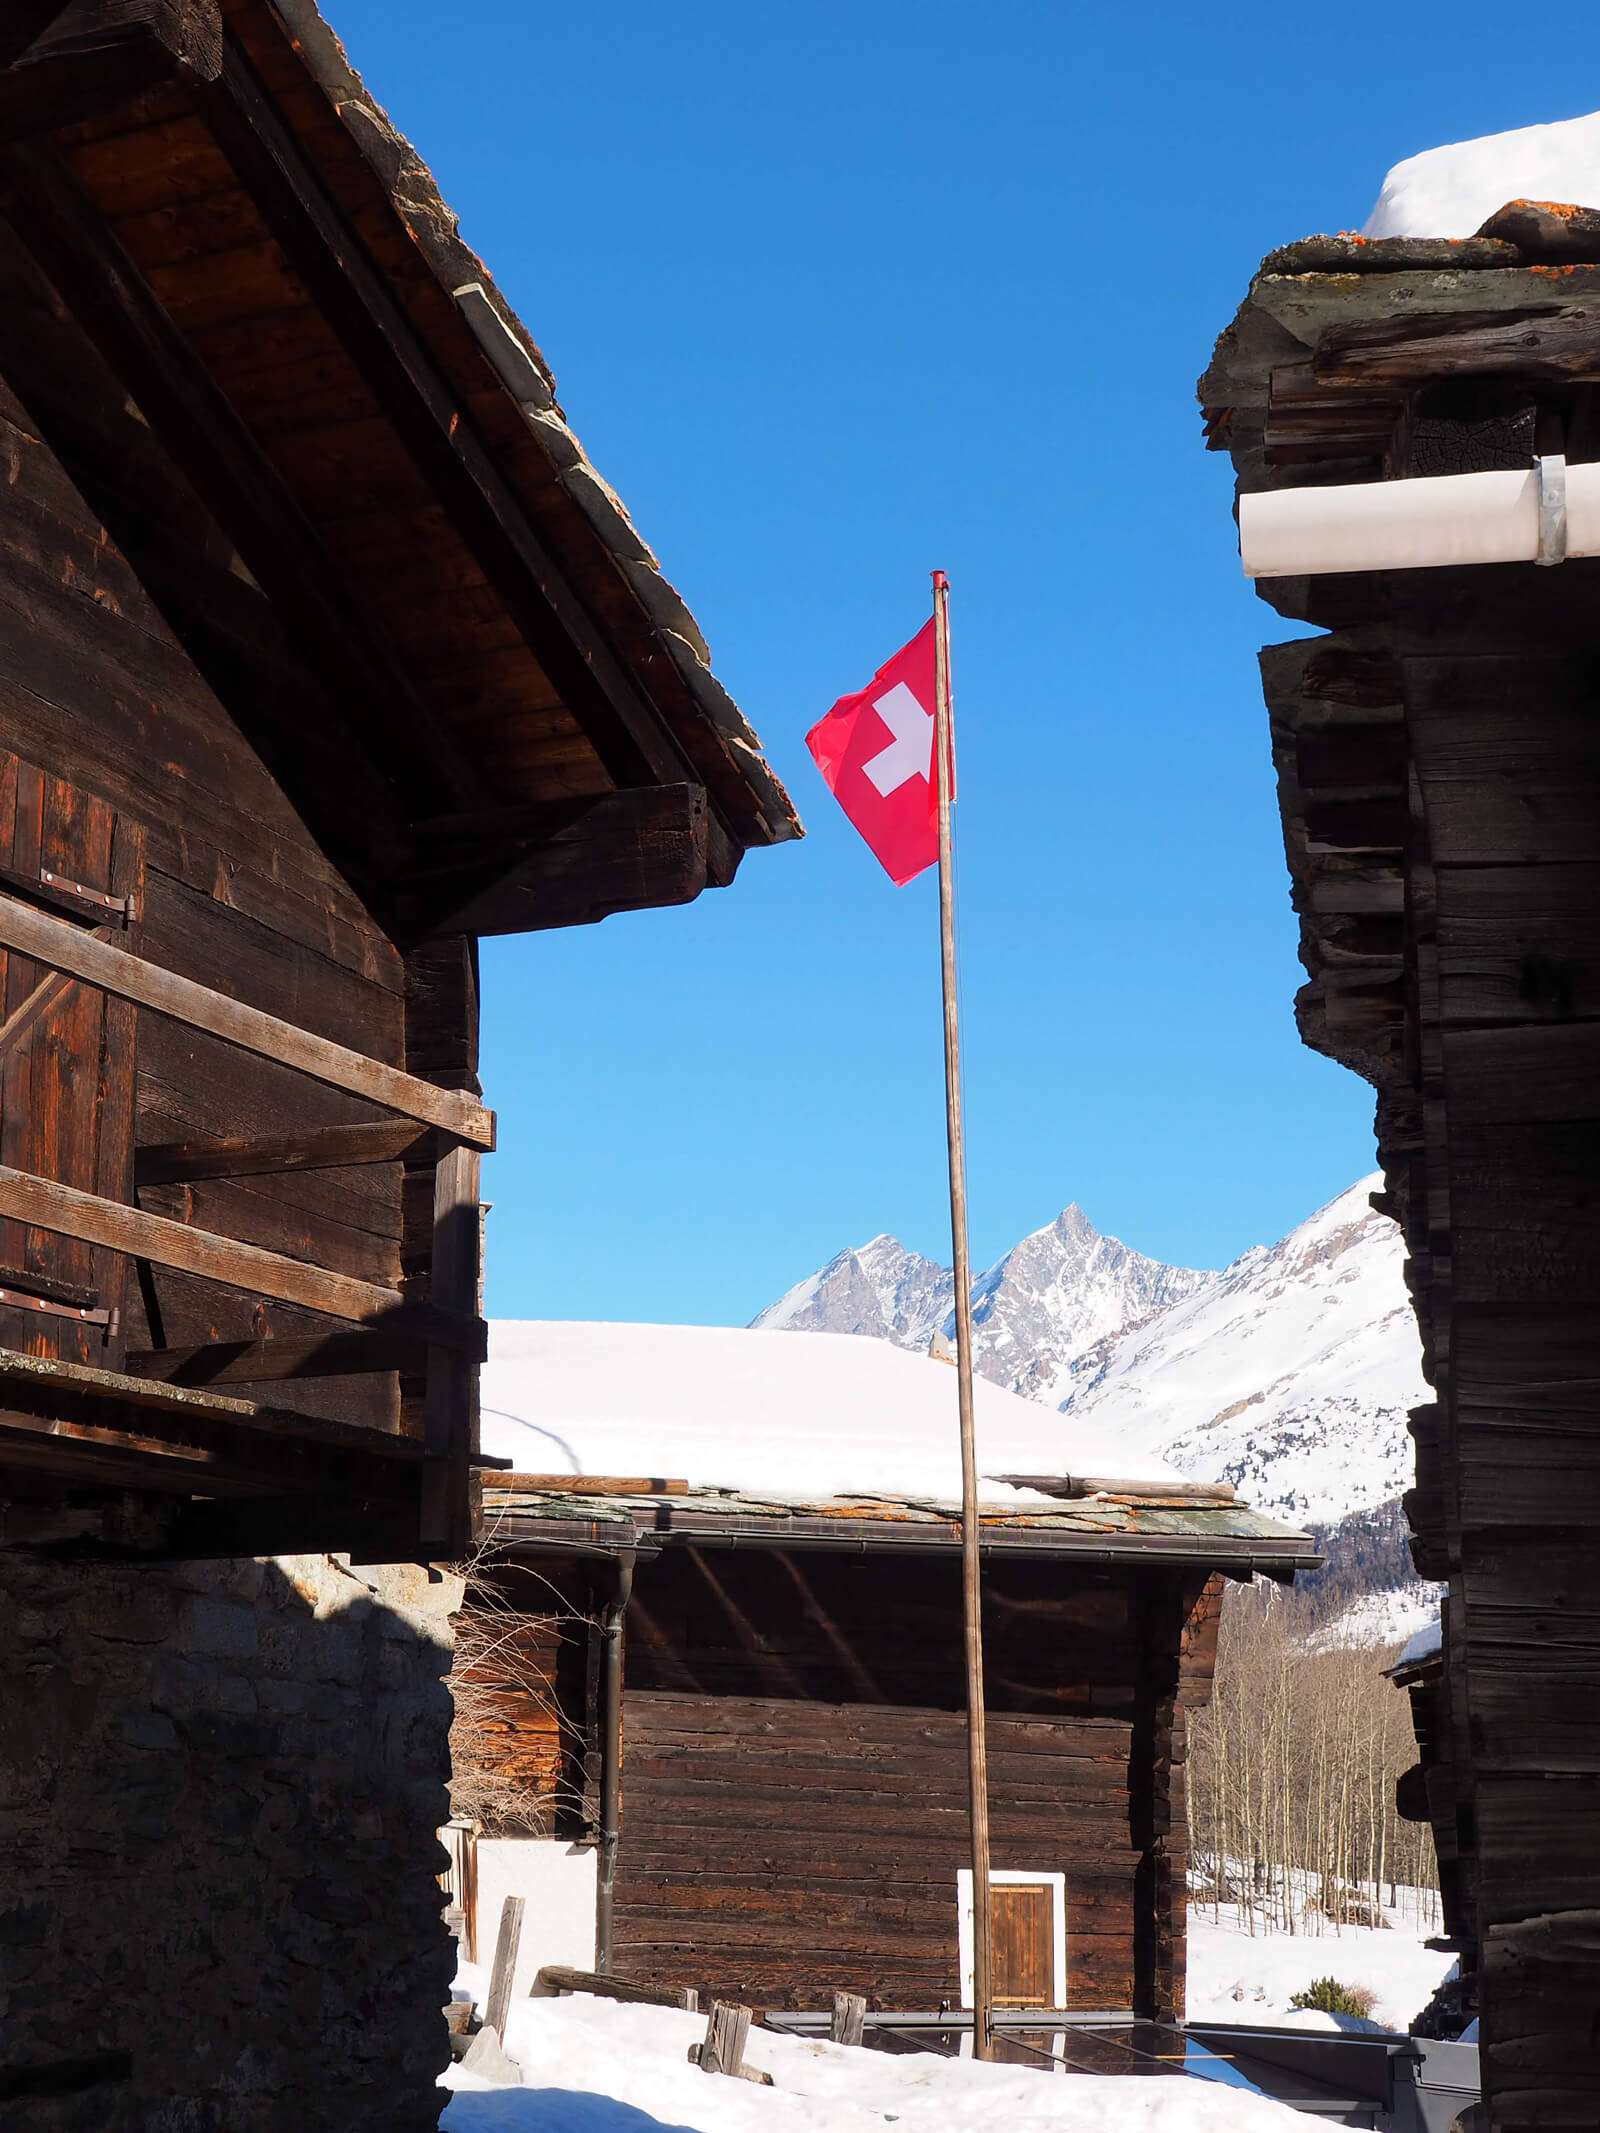 Swiss Flag in a Snow Covered Village in Valais, Switzerland